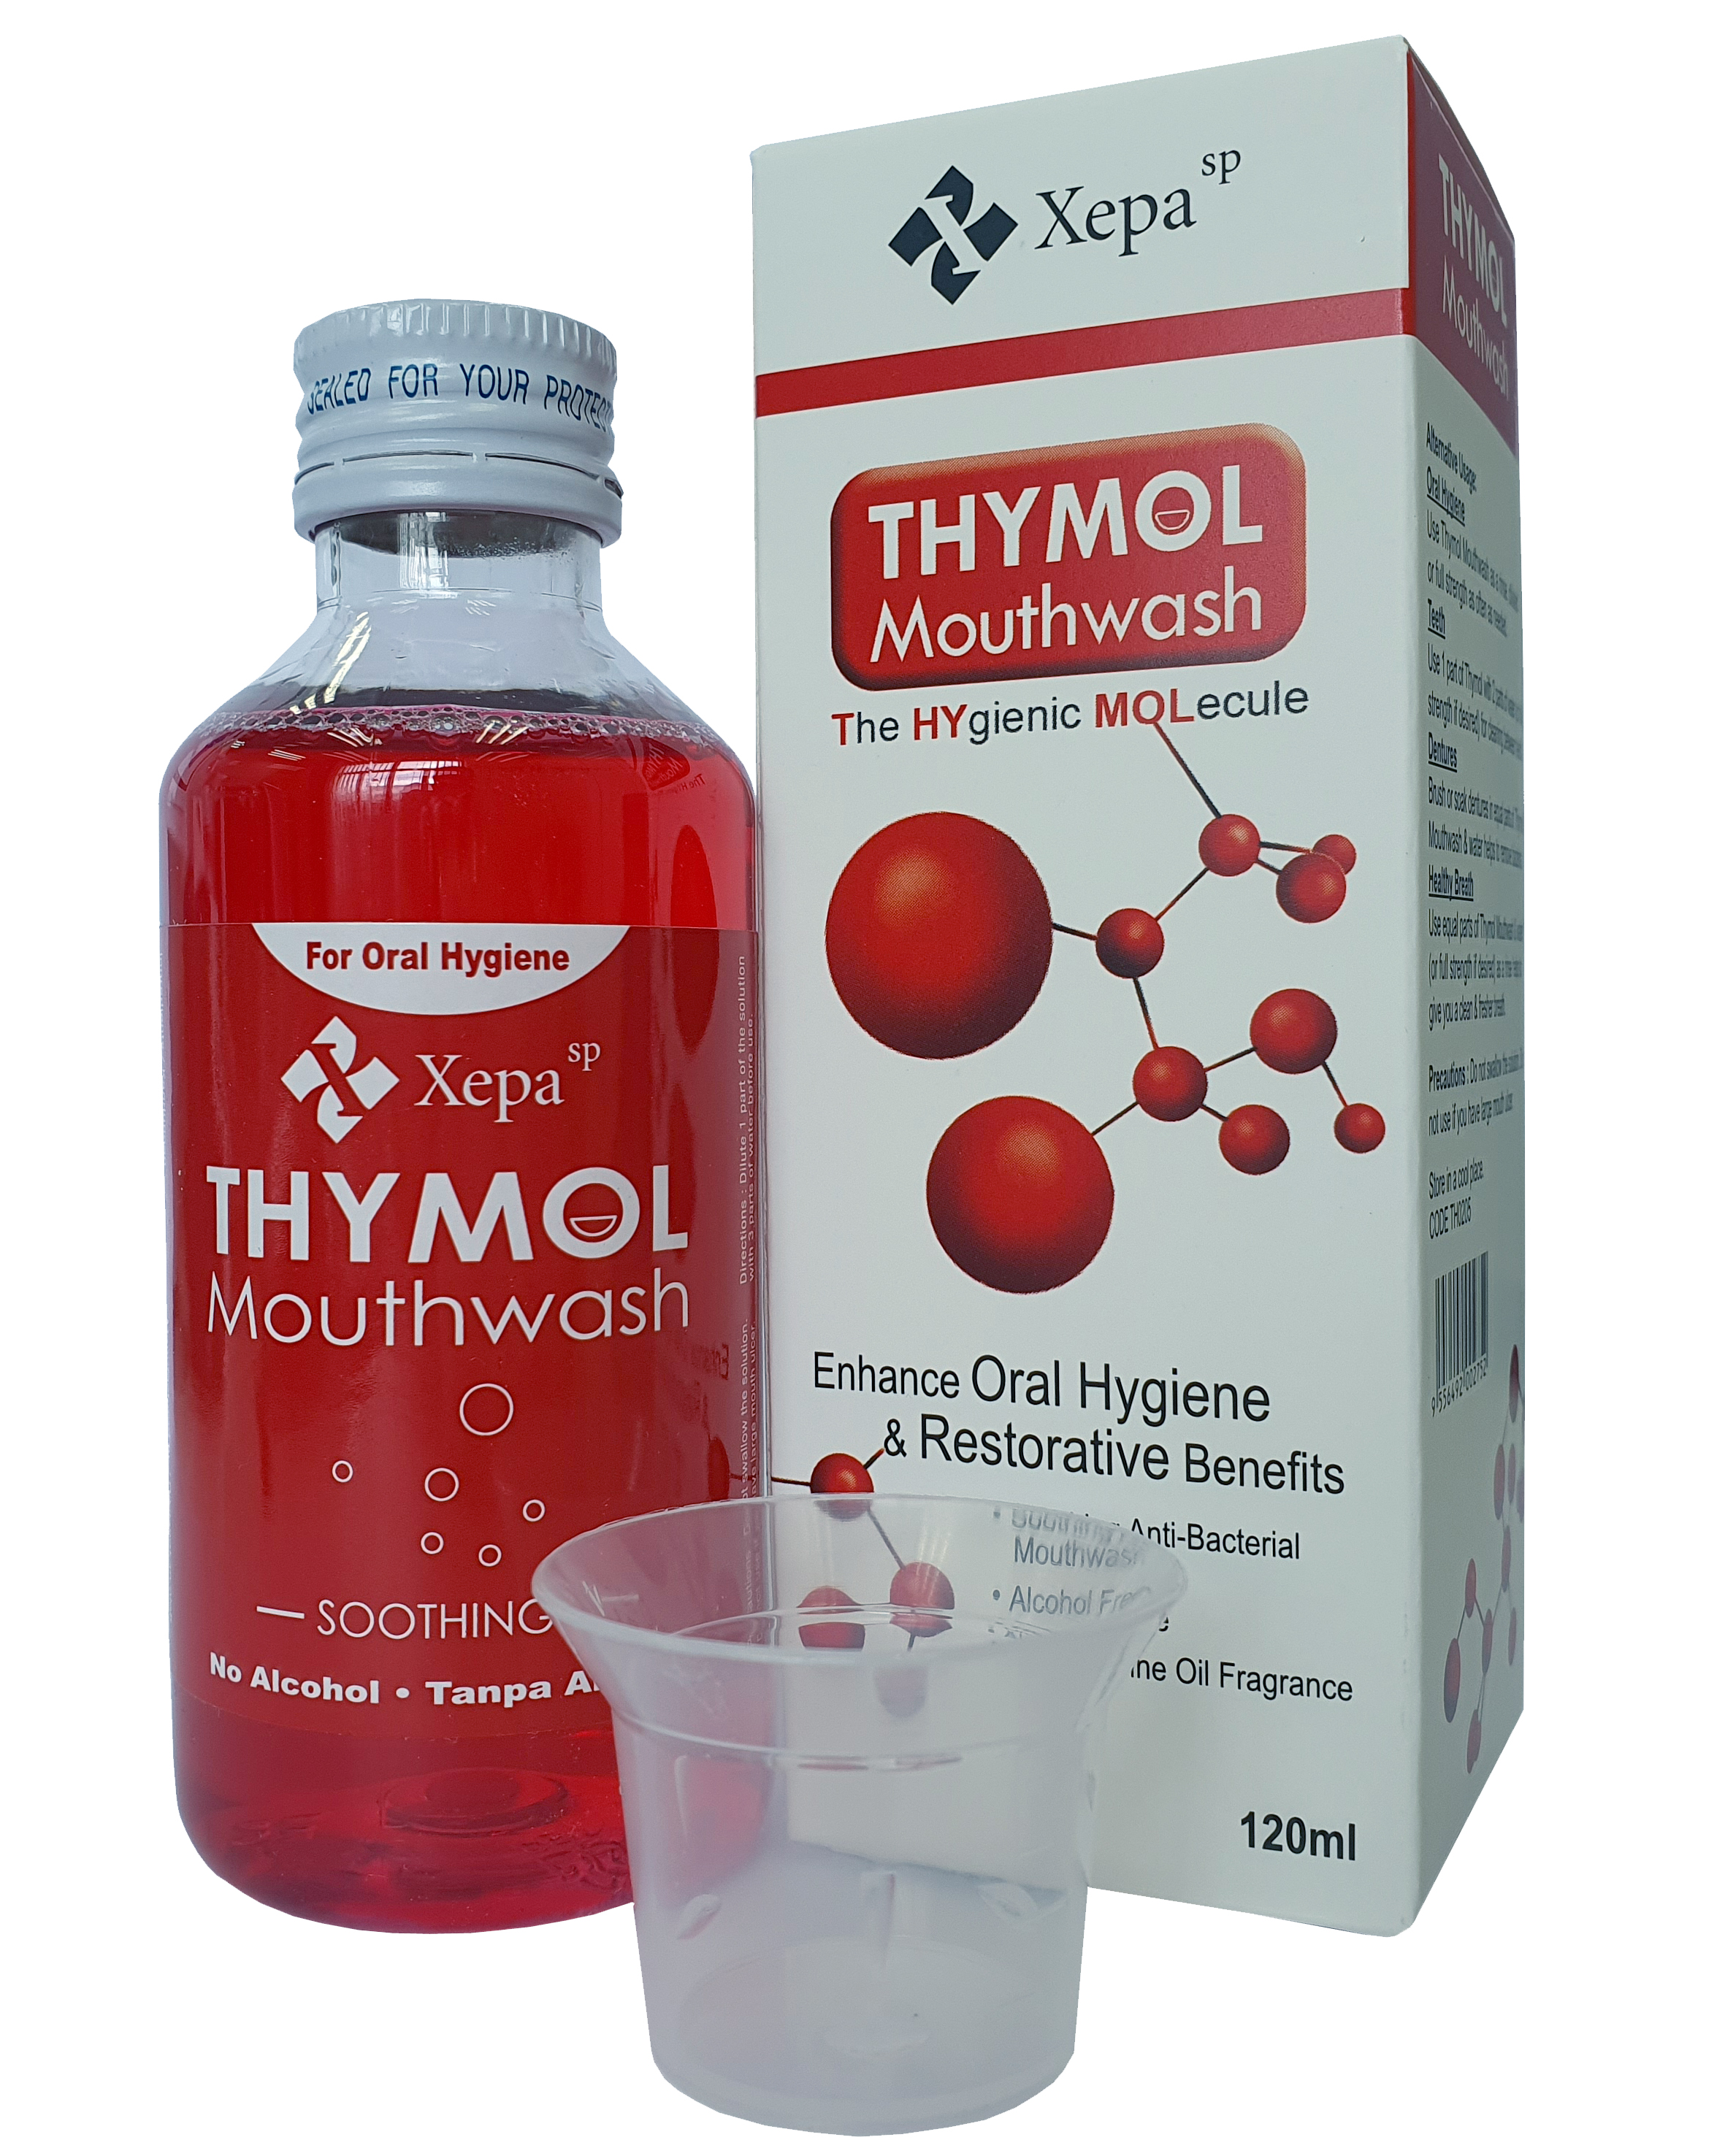 Thymol-Mouthwash-The-Hygienic-MOLecule